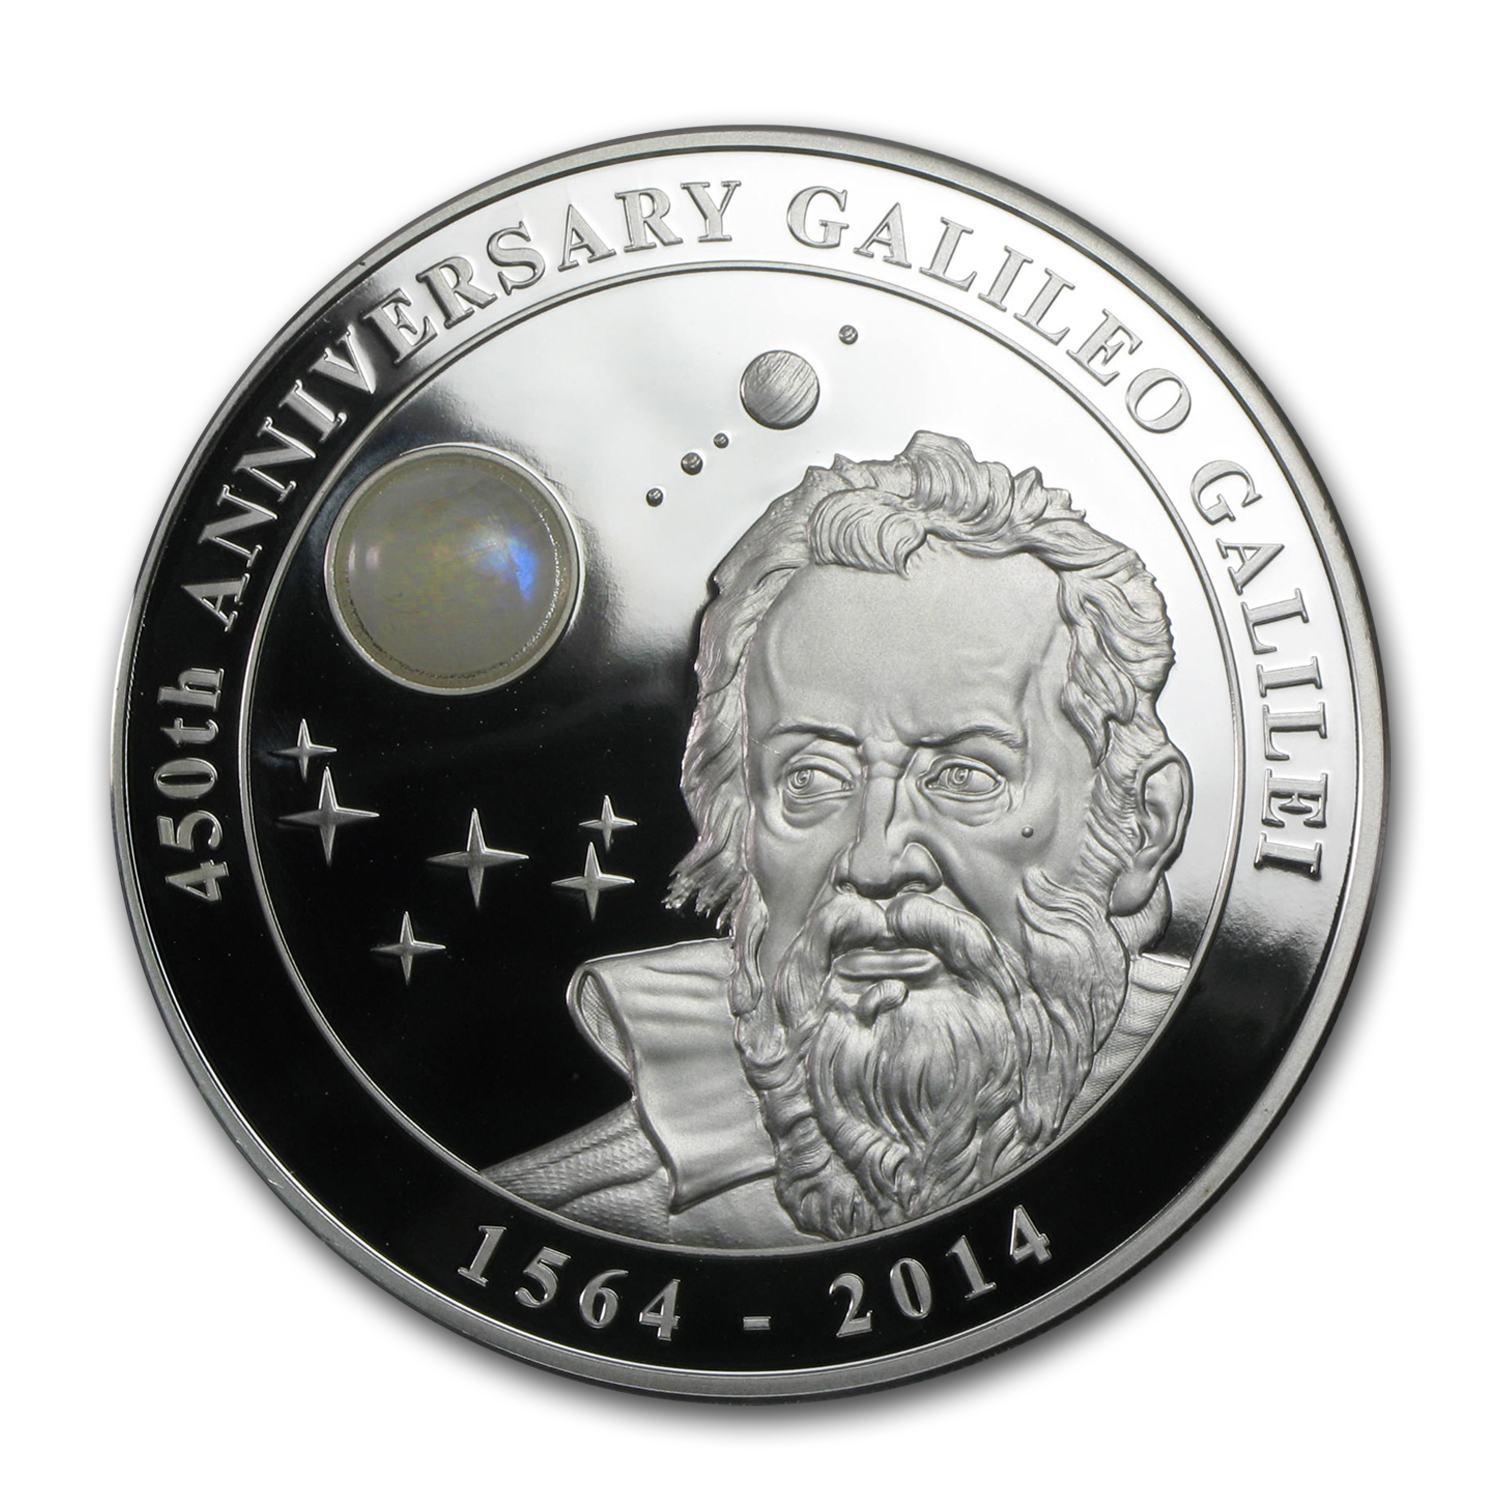 2014 Cook Islands 2 oz Silver Galileo Galilei Moonstone Proof